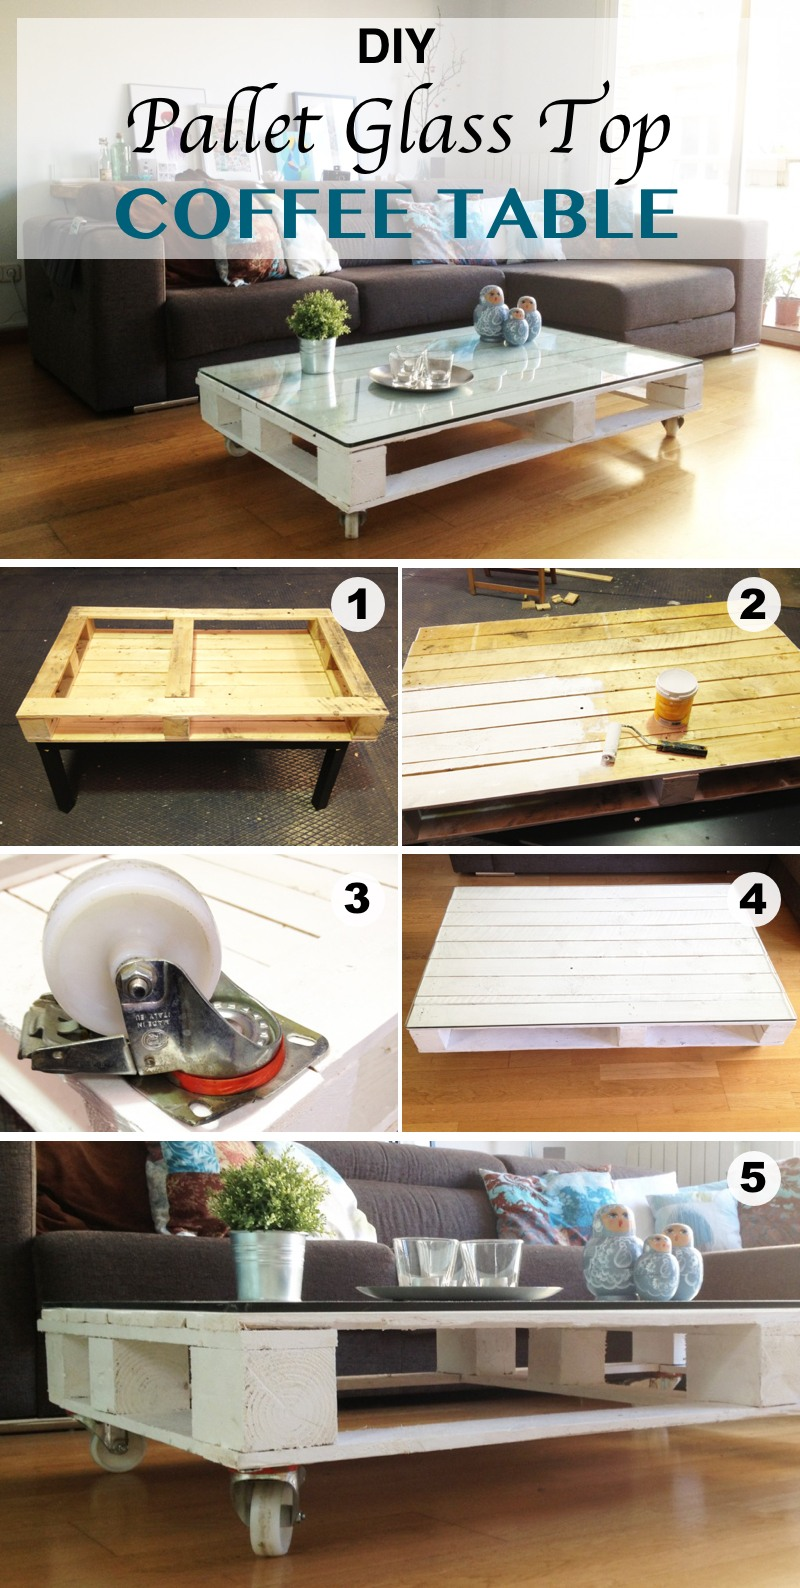 DIY Pallet Glass Top Coffee Table